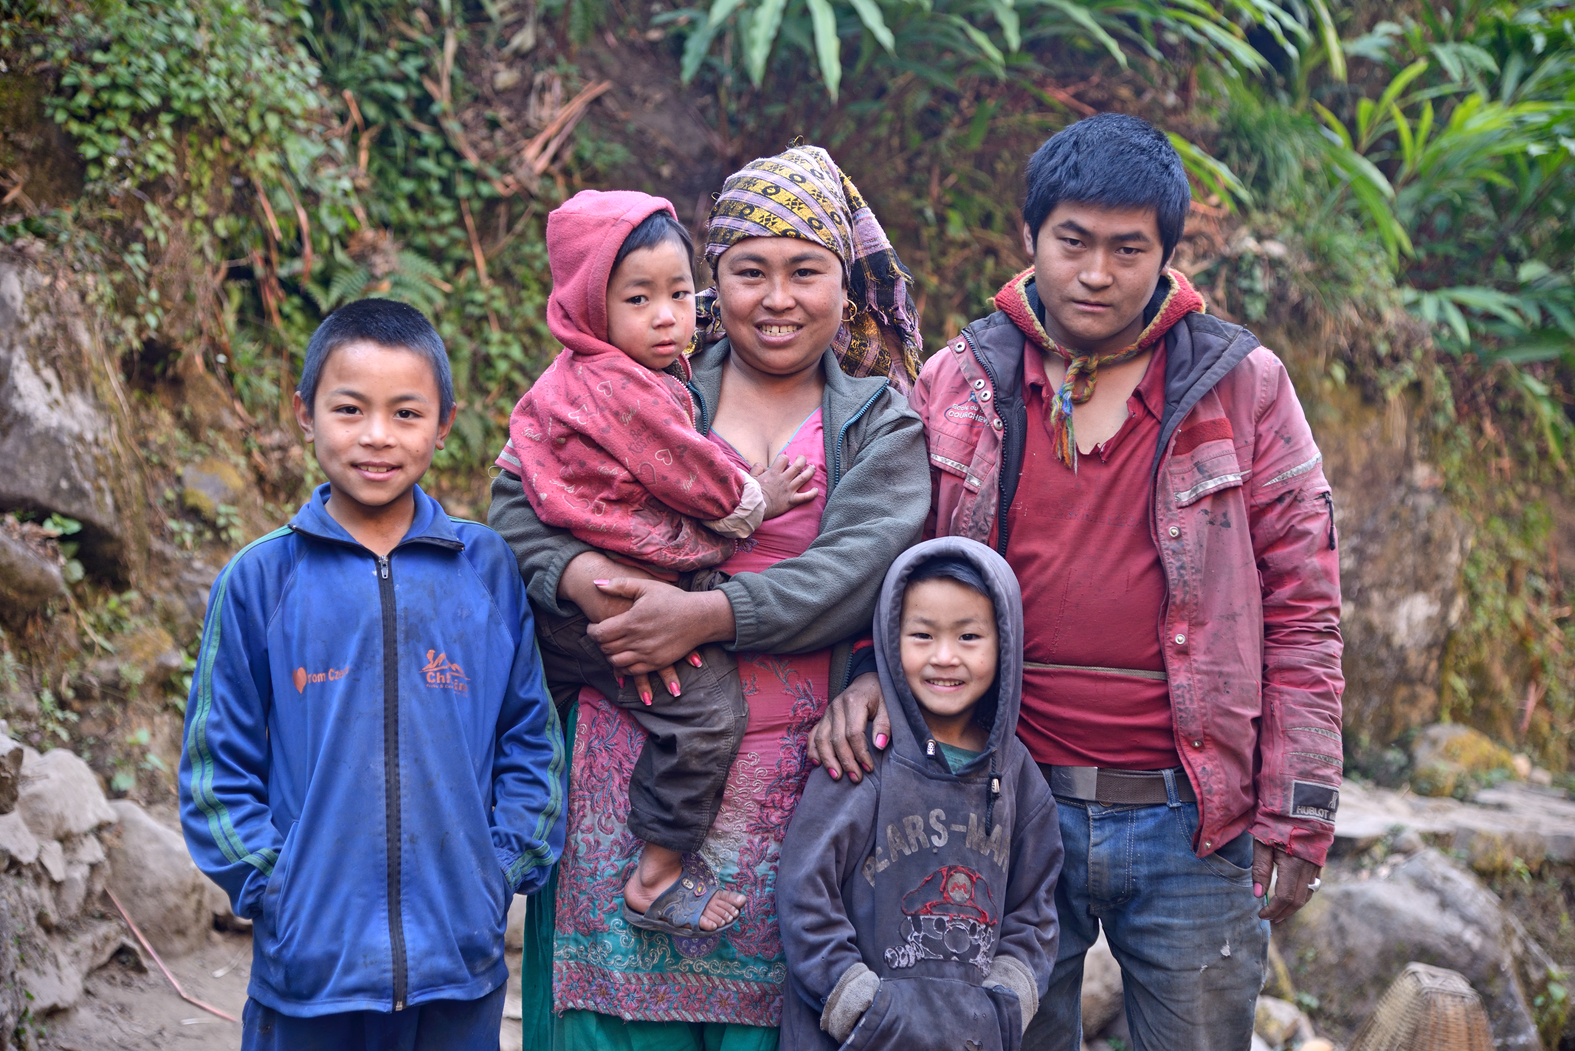 The Happy Family Man | Stories Of Nepal